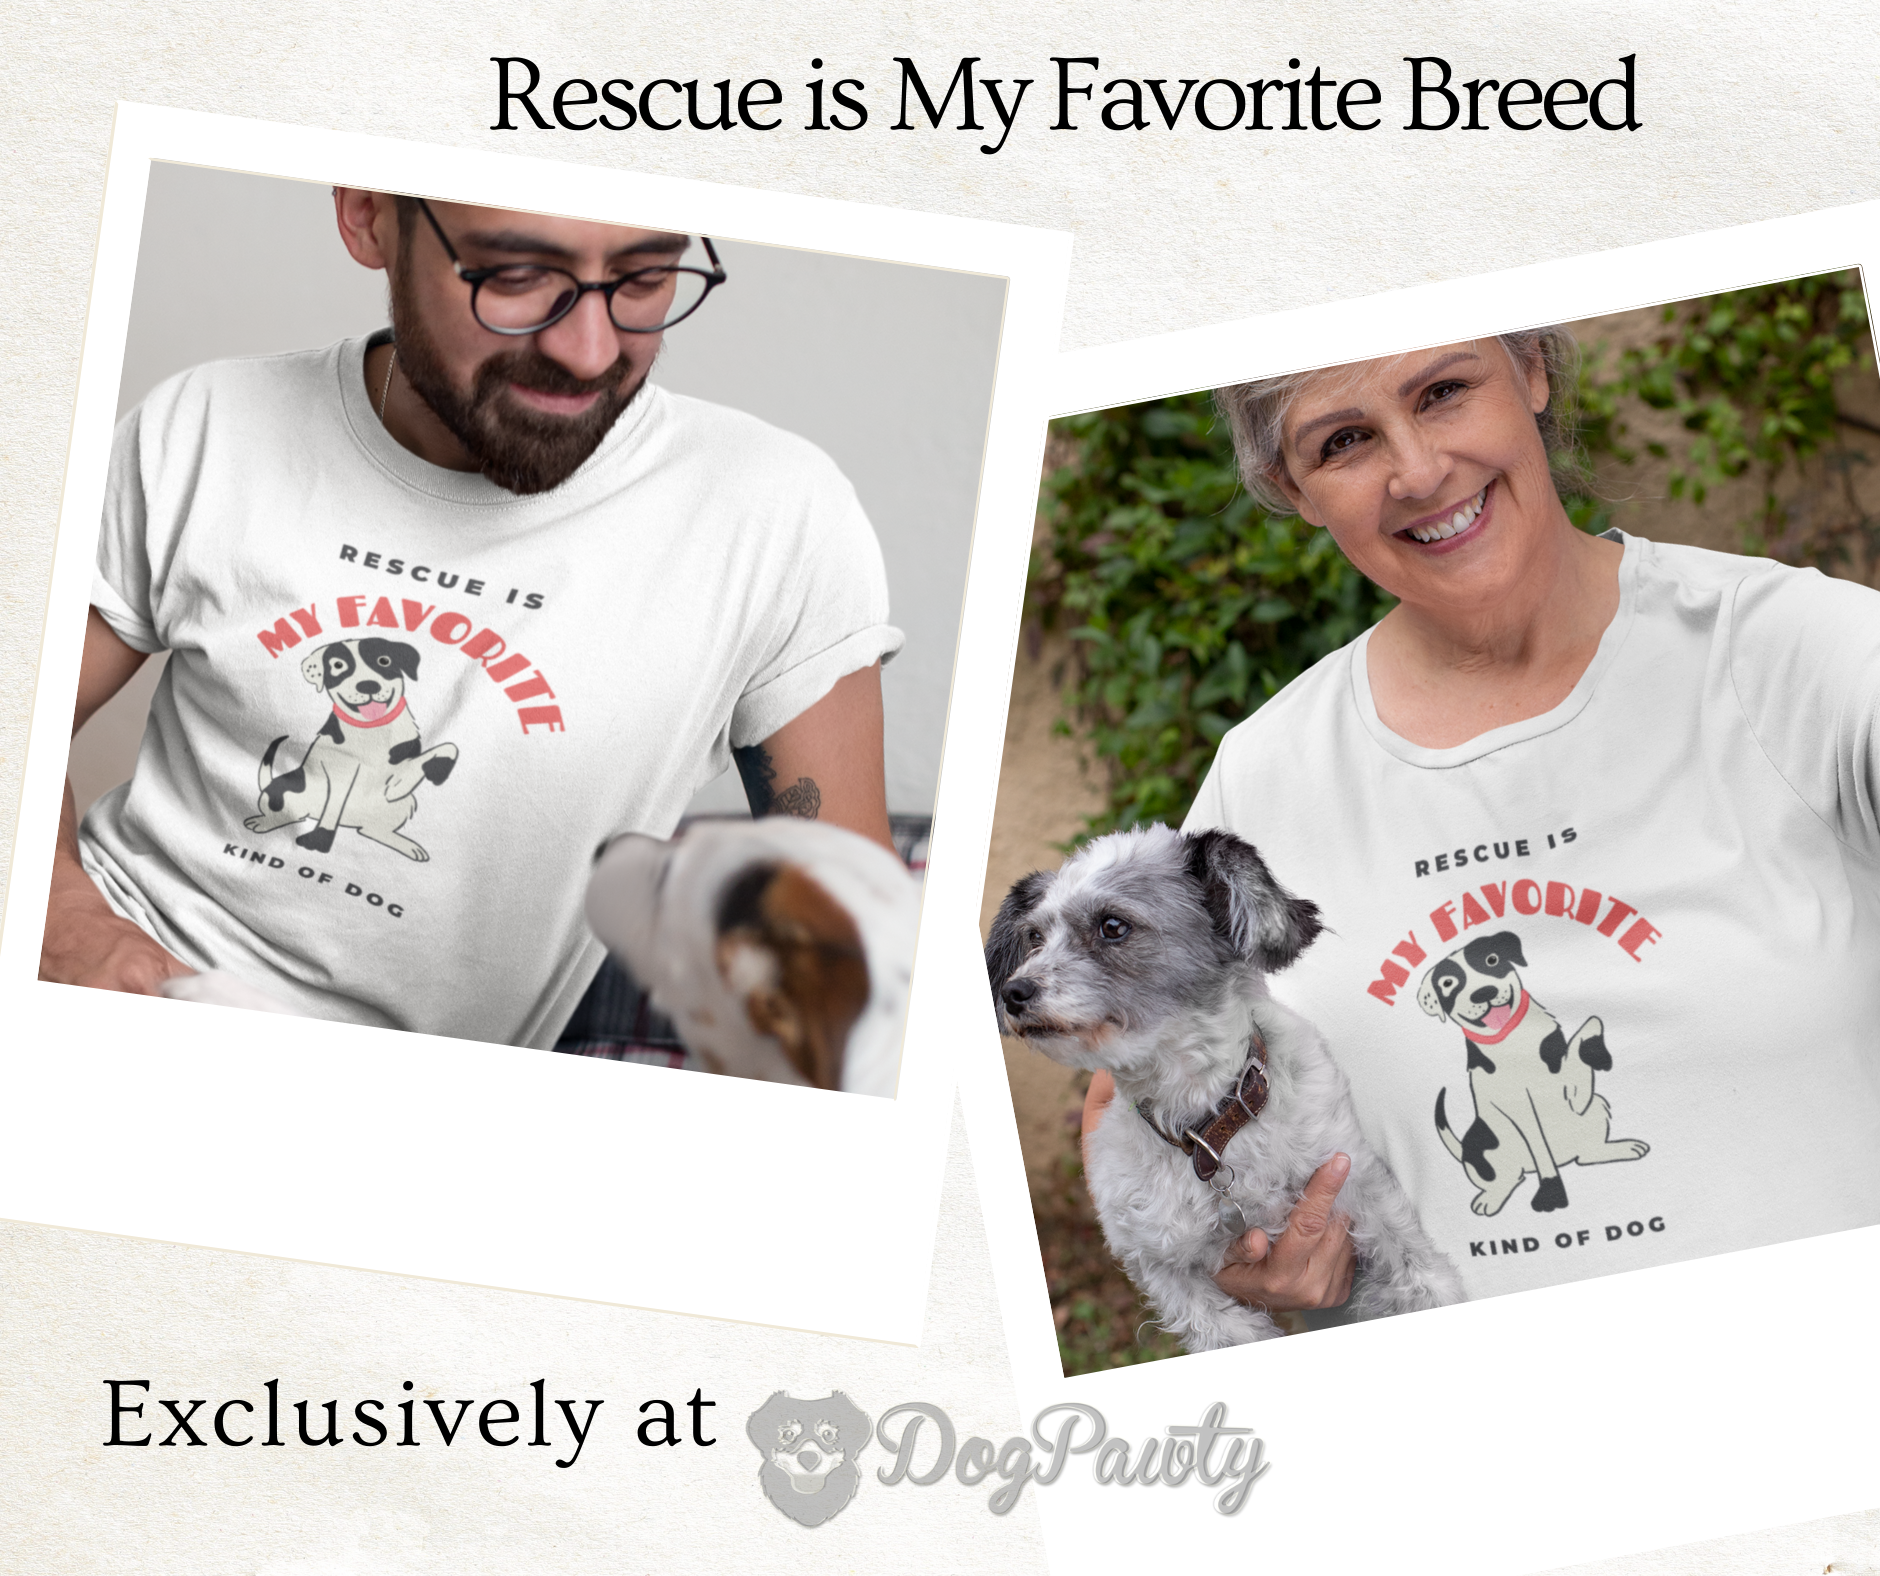 RESCUE IS MY FAVORITE KIND OF DOG WOMEN'S & MEN'S T-SHIRT